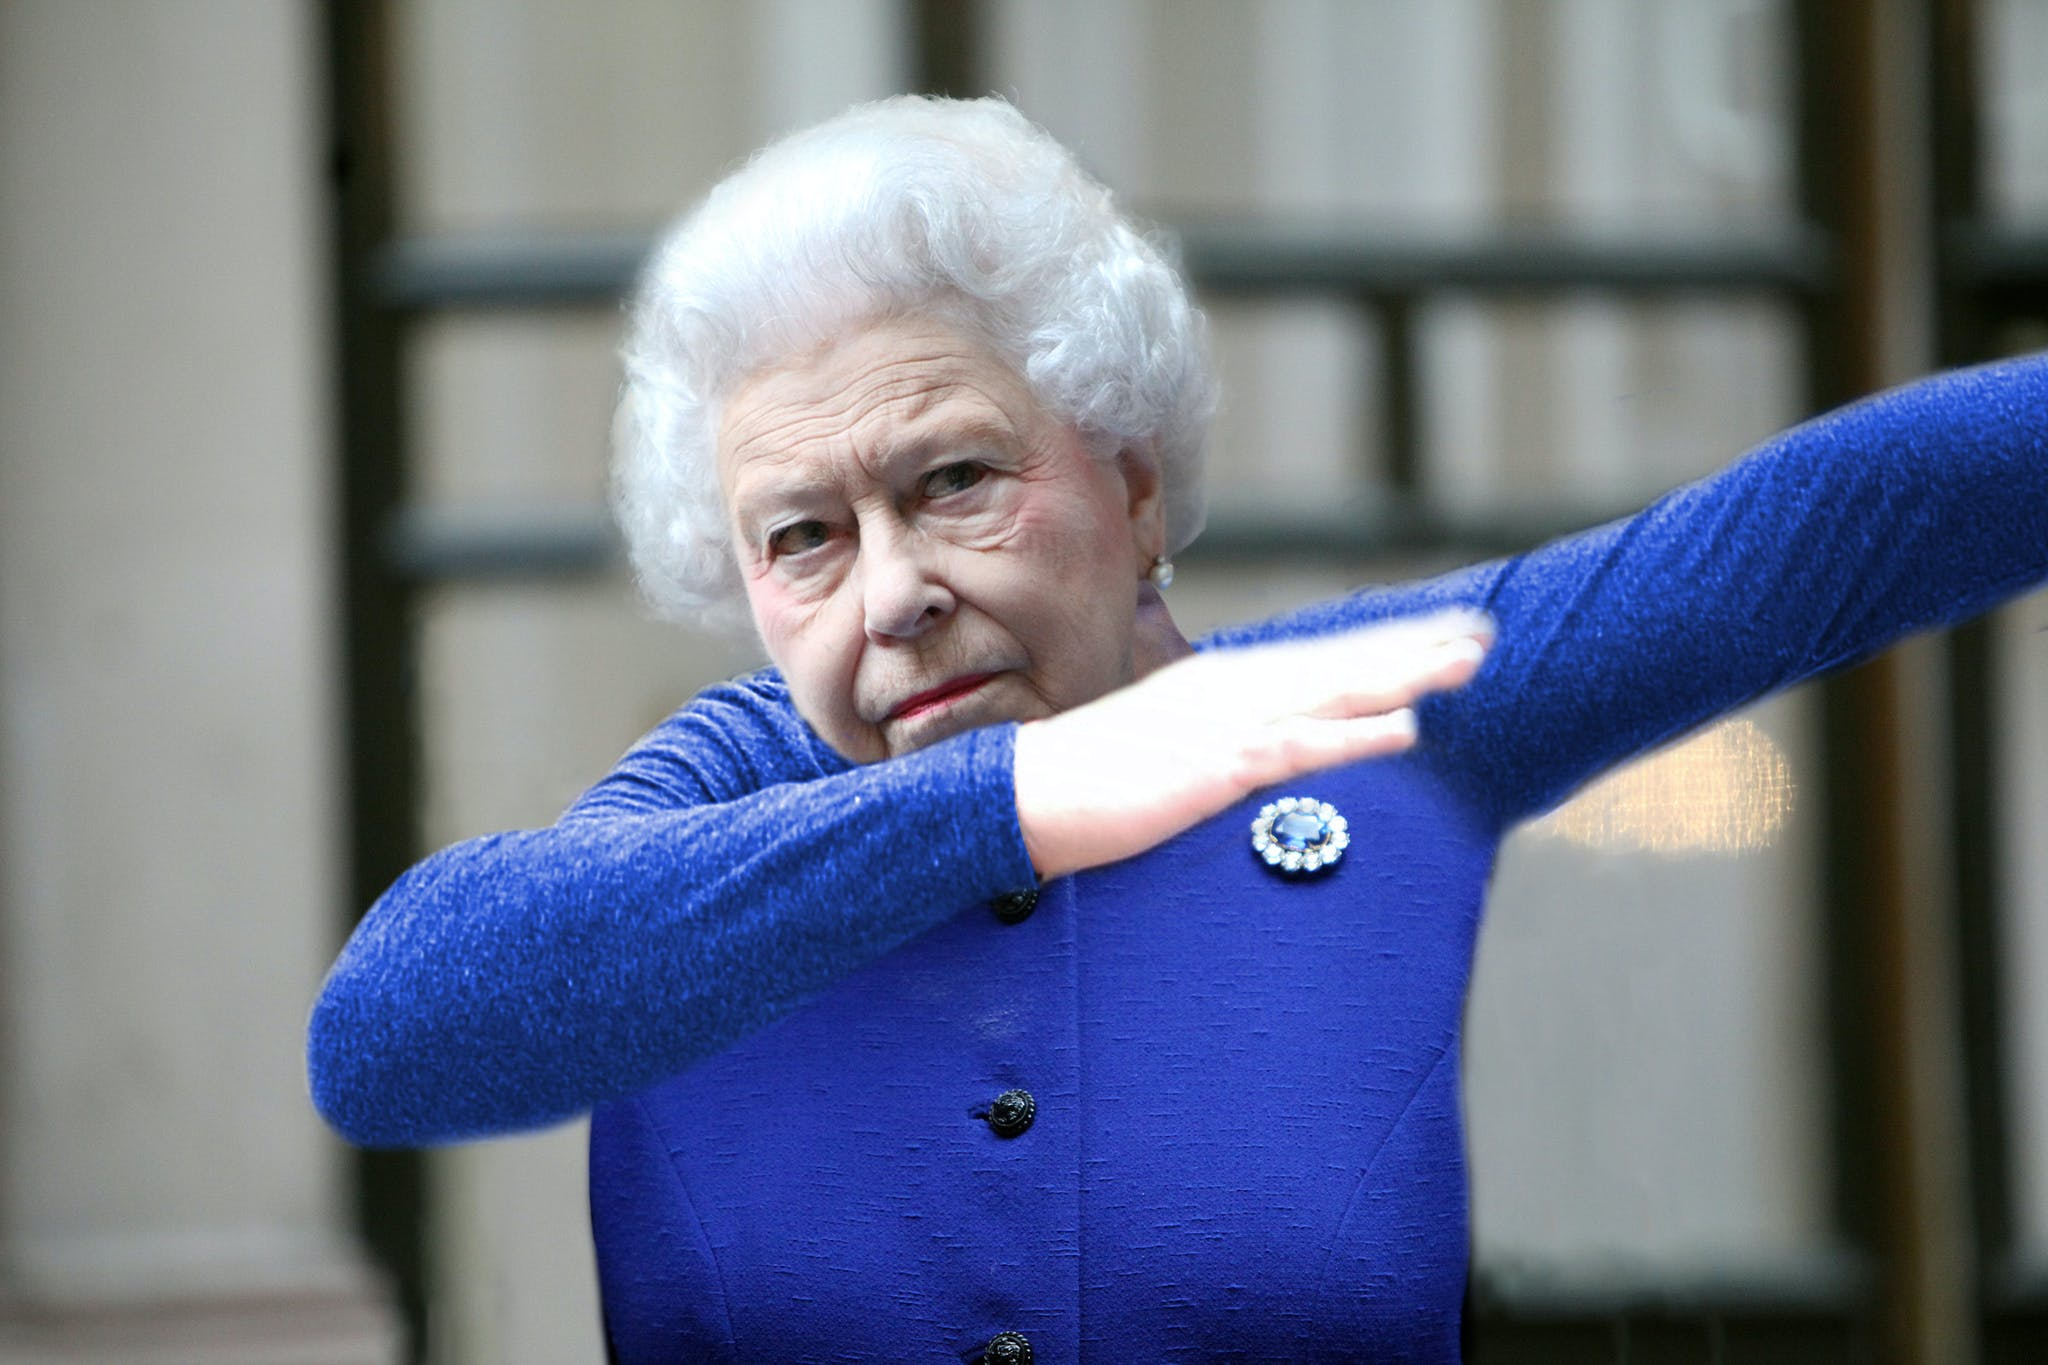 The Queen dabbing